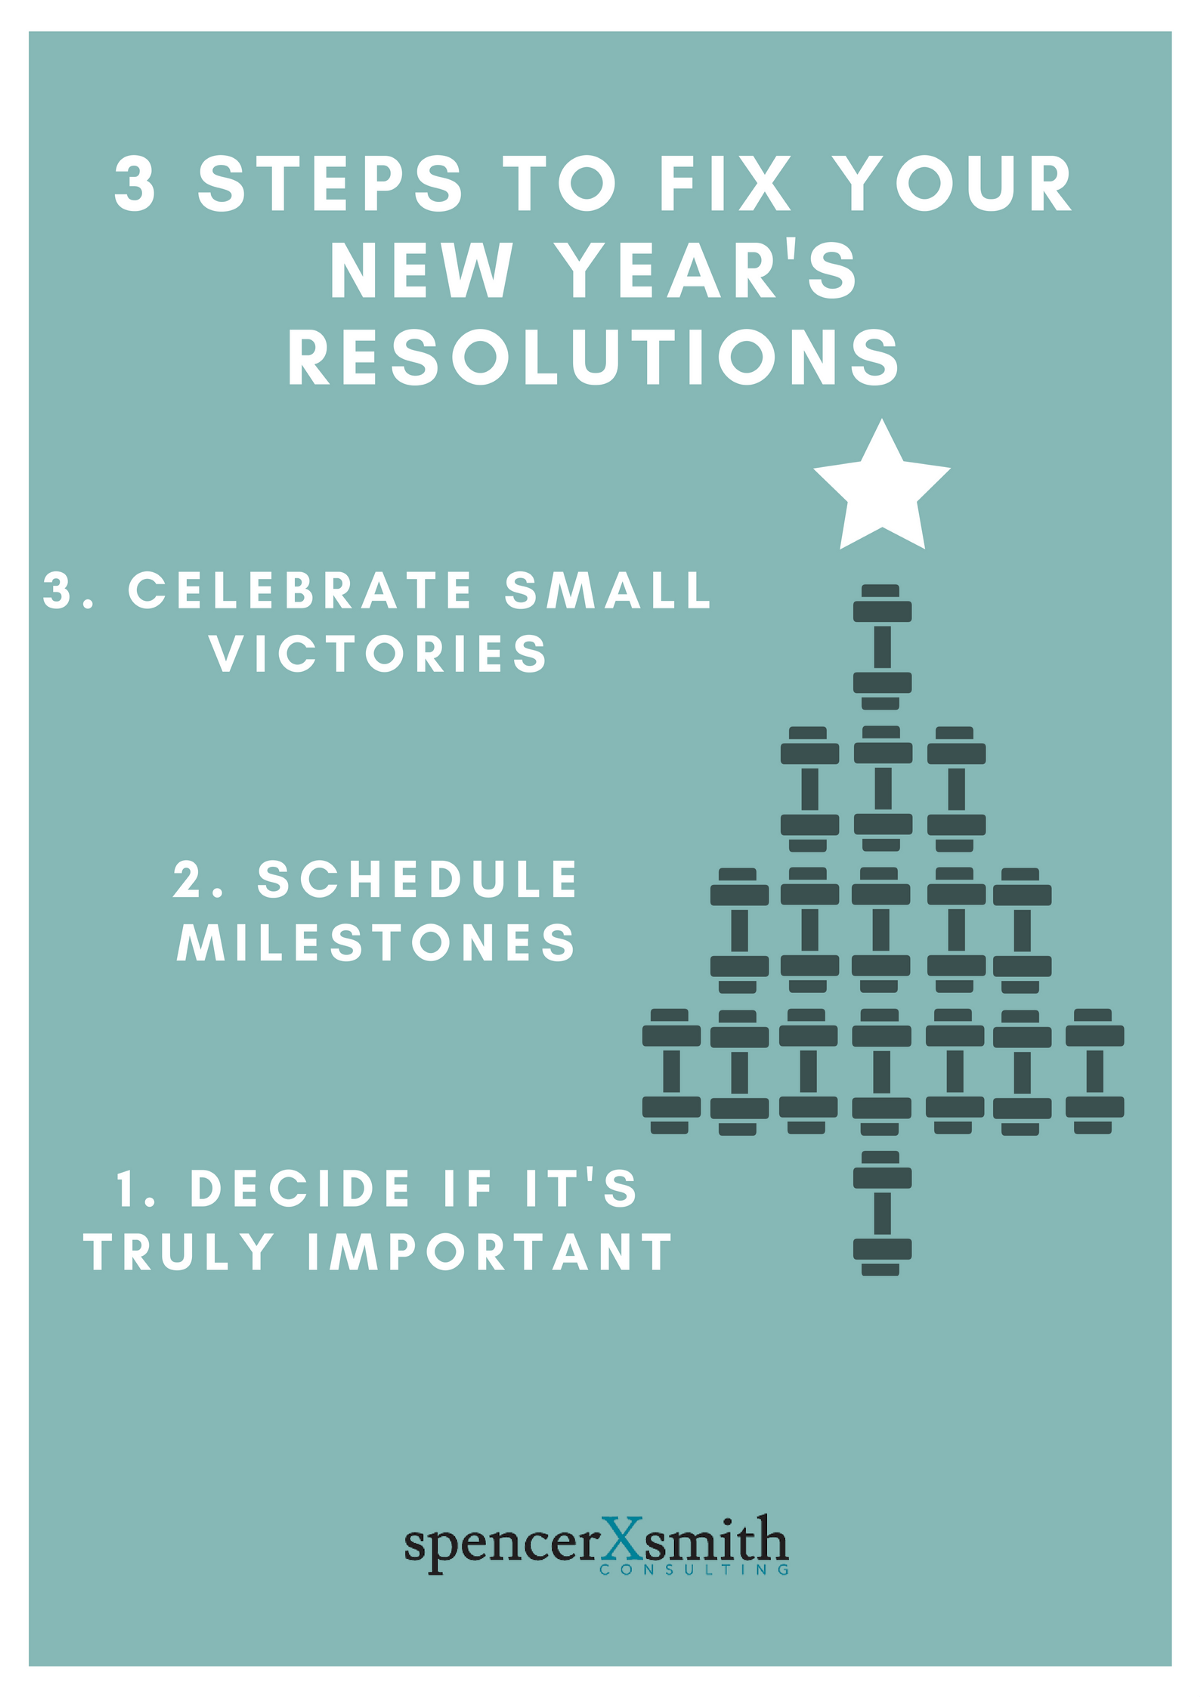 3 steps to fix your new year's resolutions